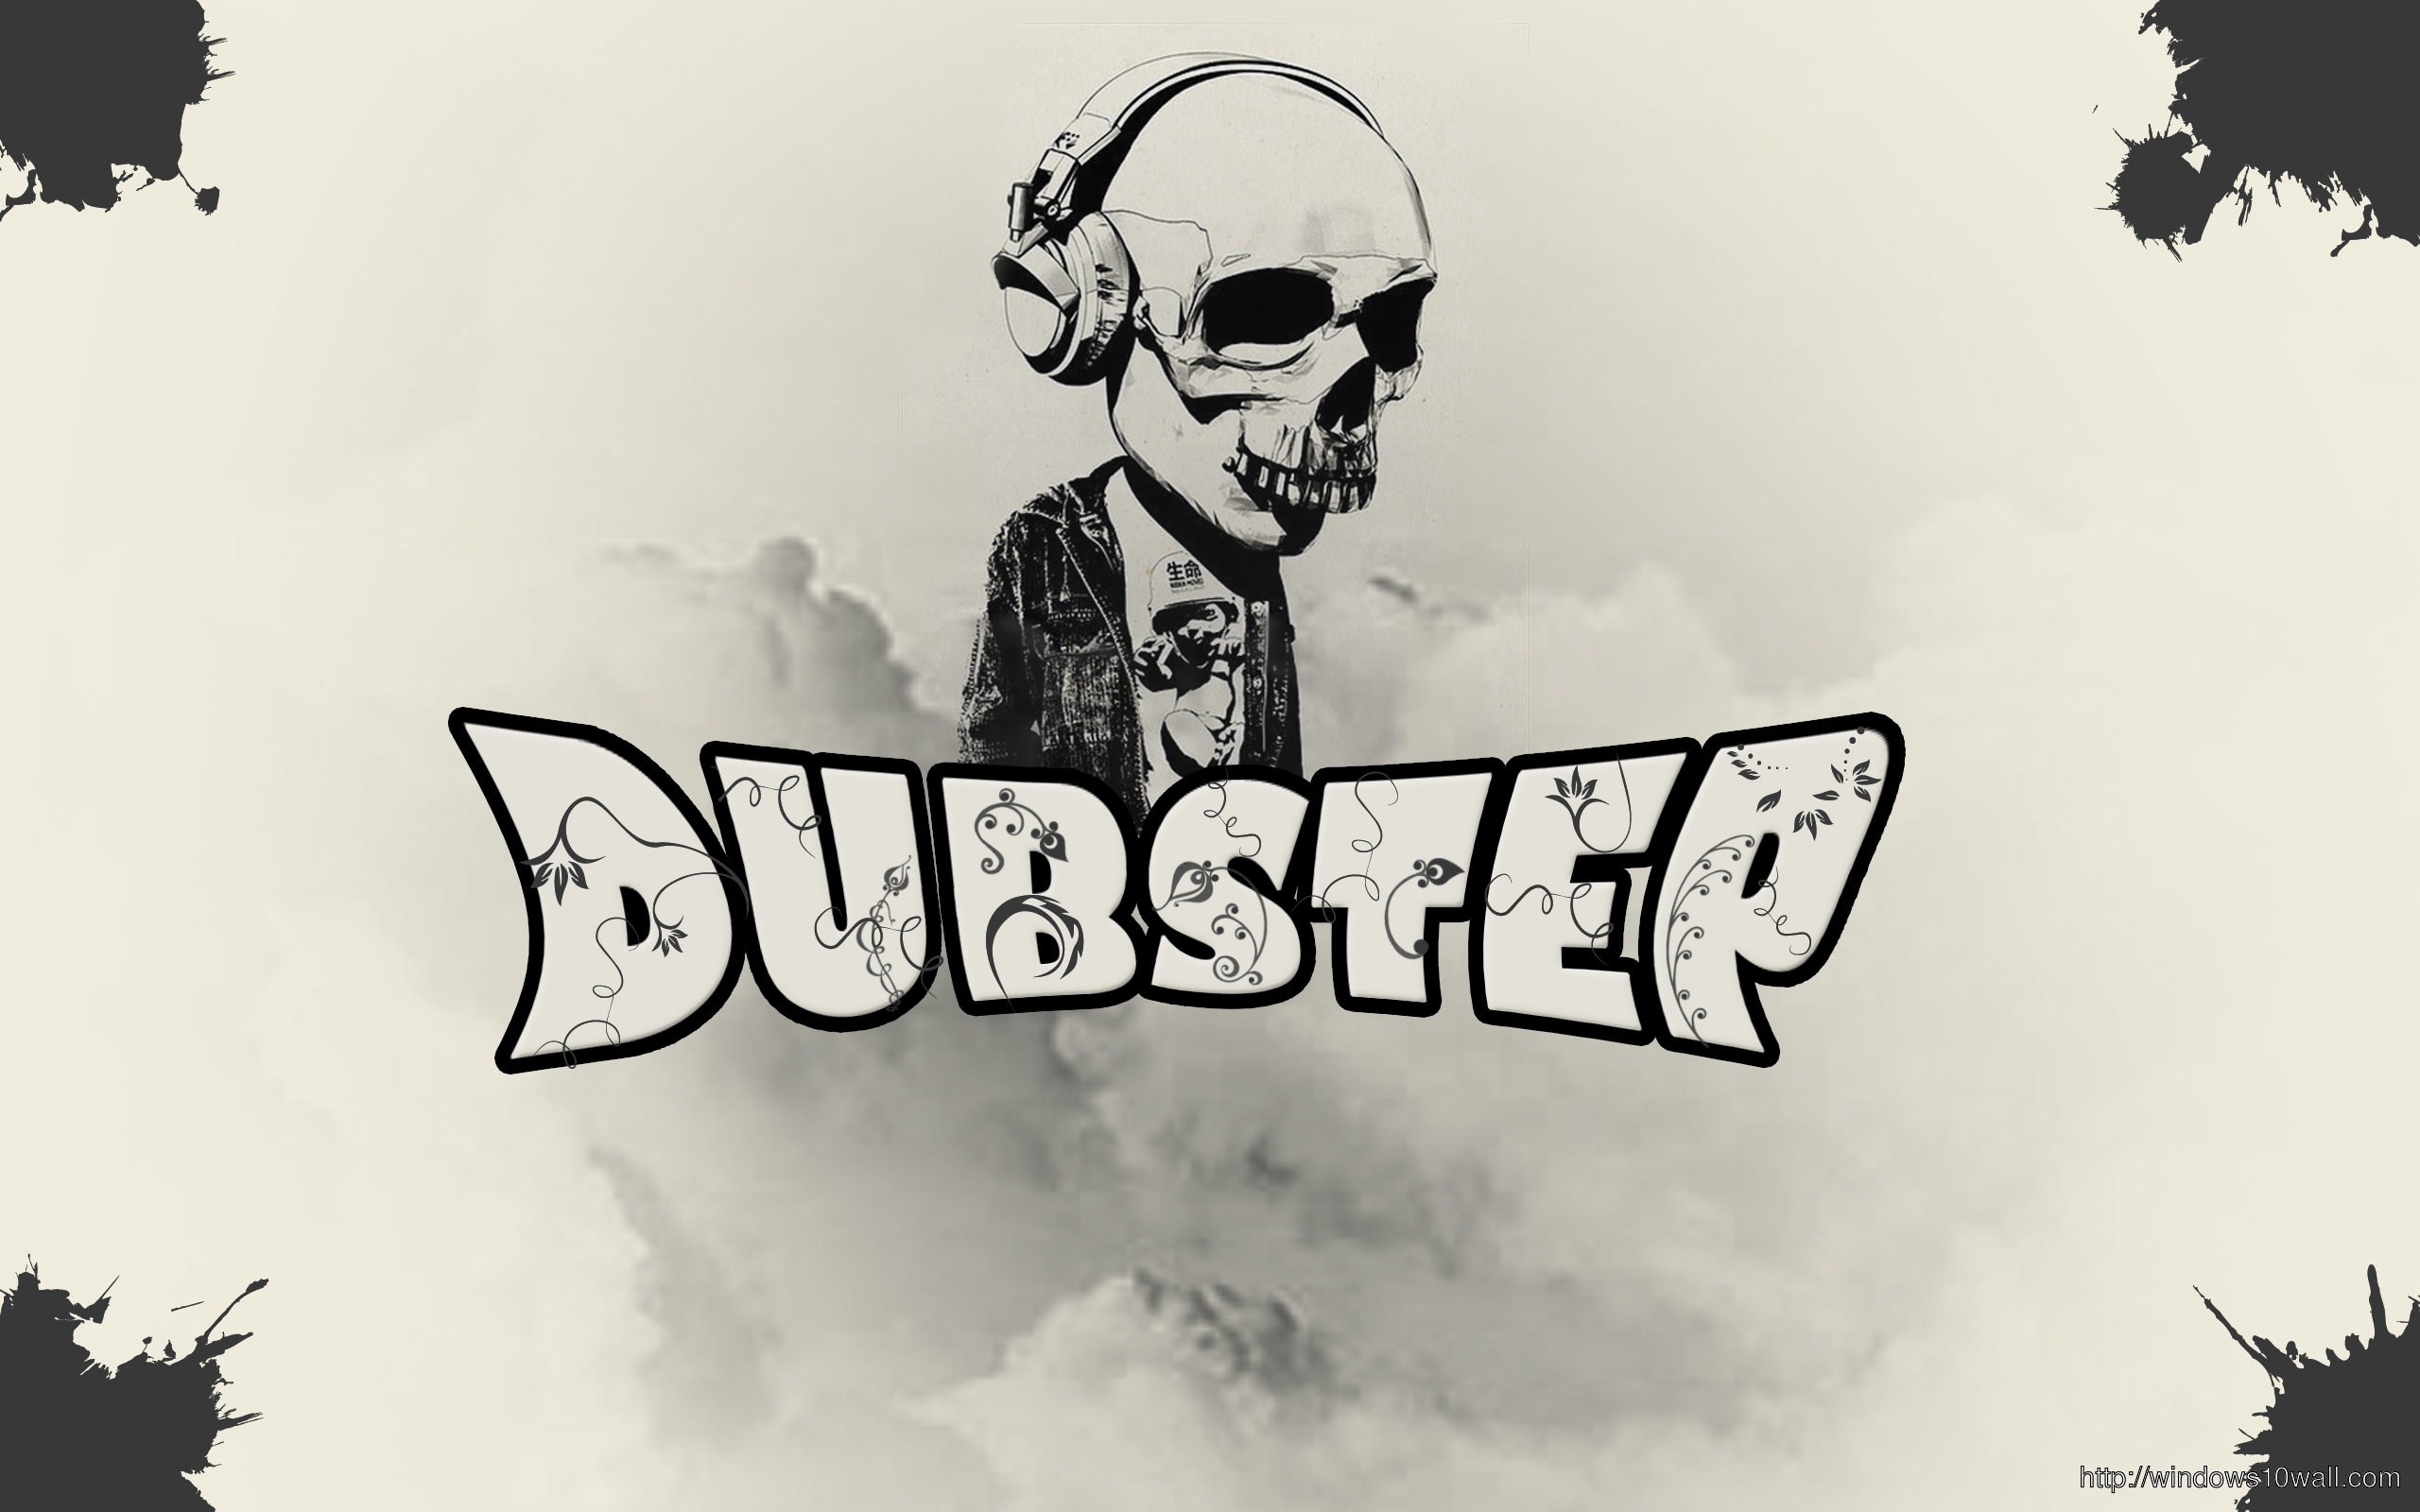 dubstep-skull-music-background-wallpaper